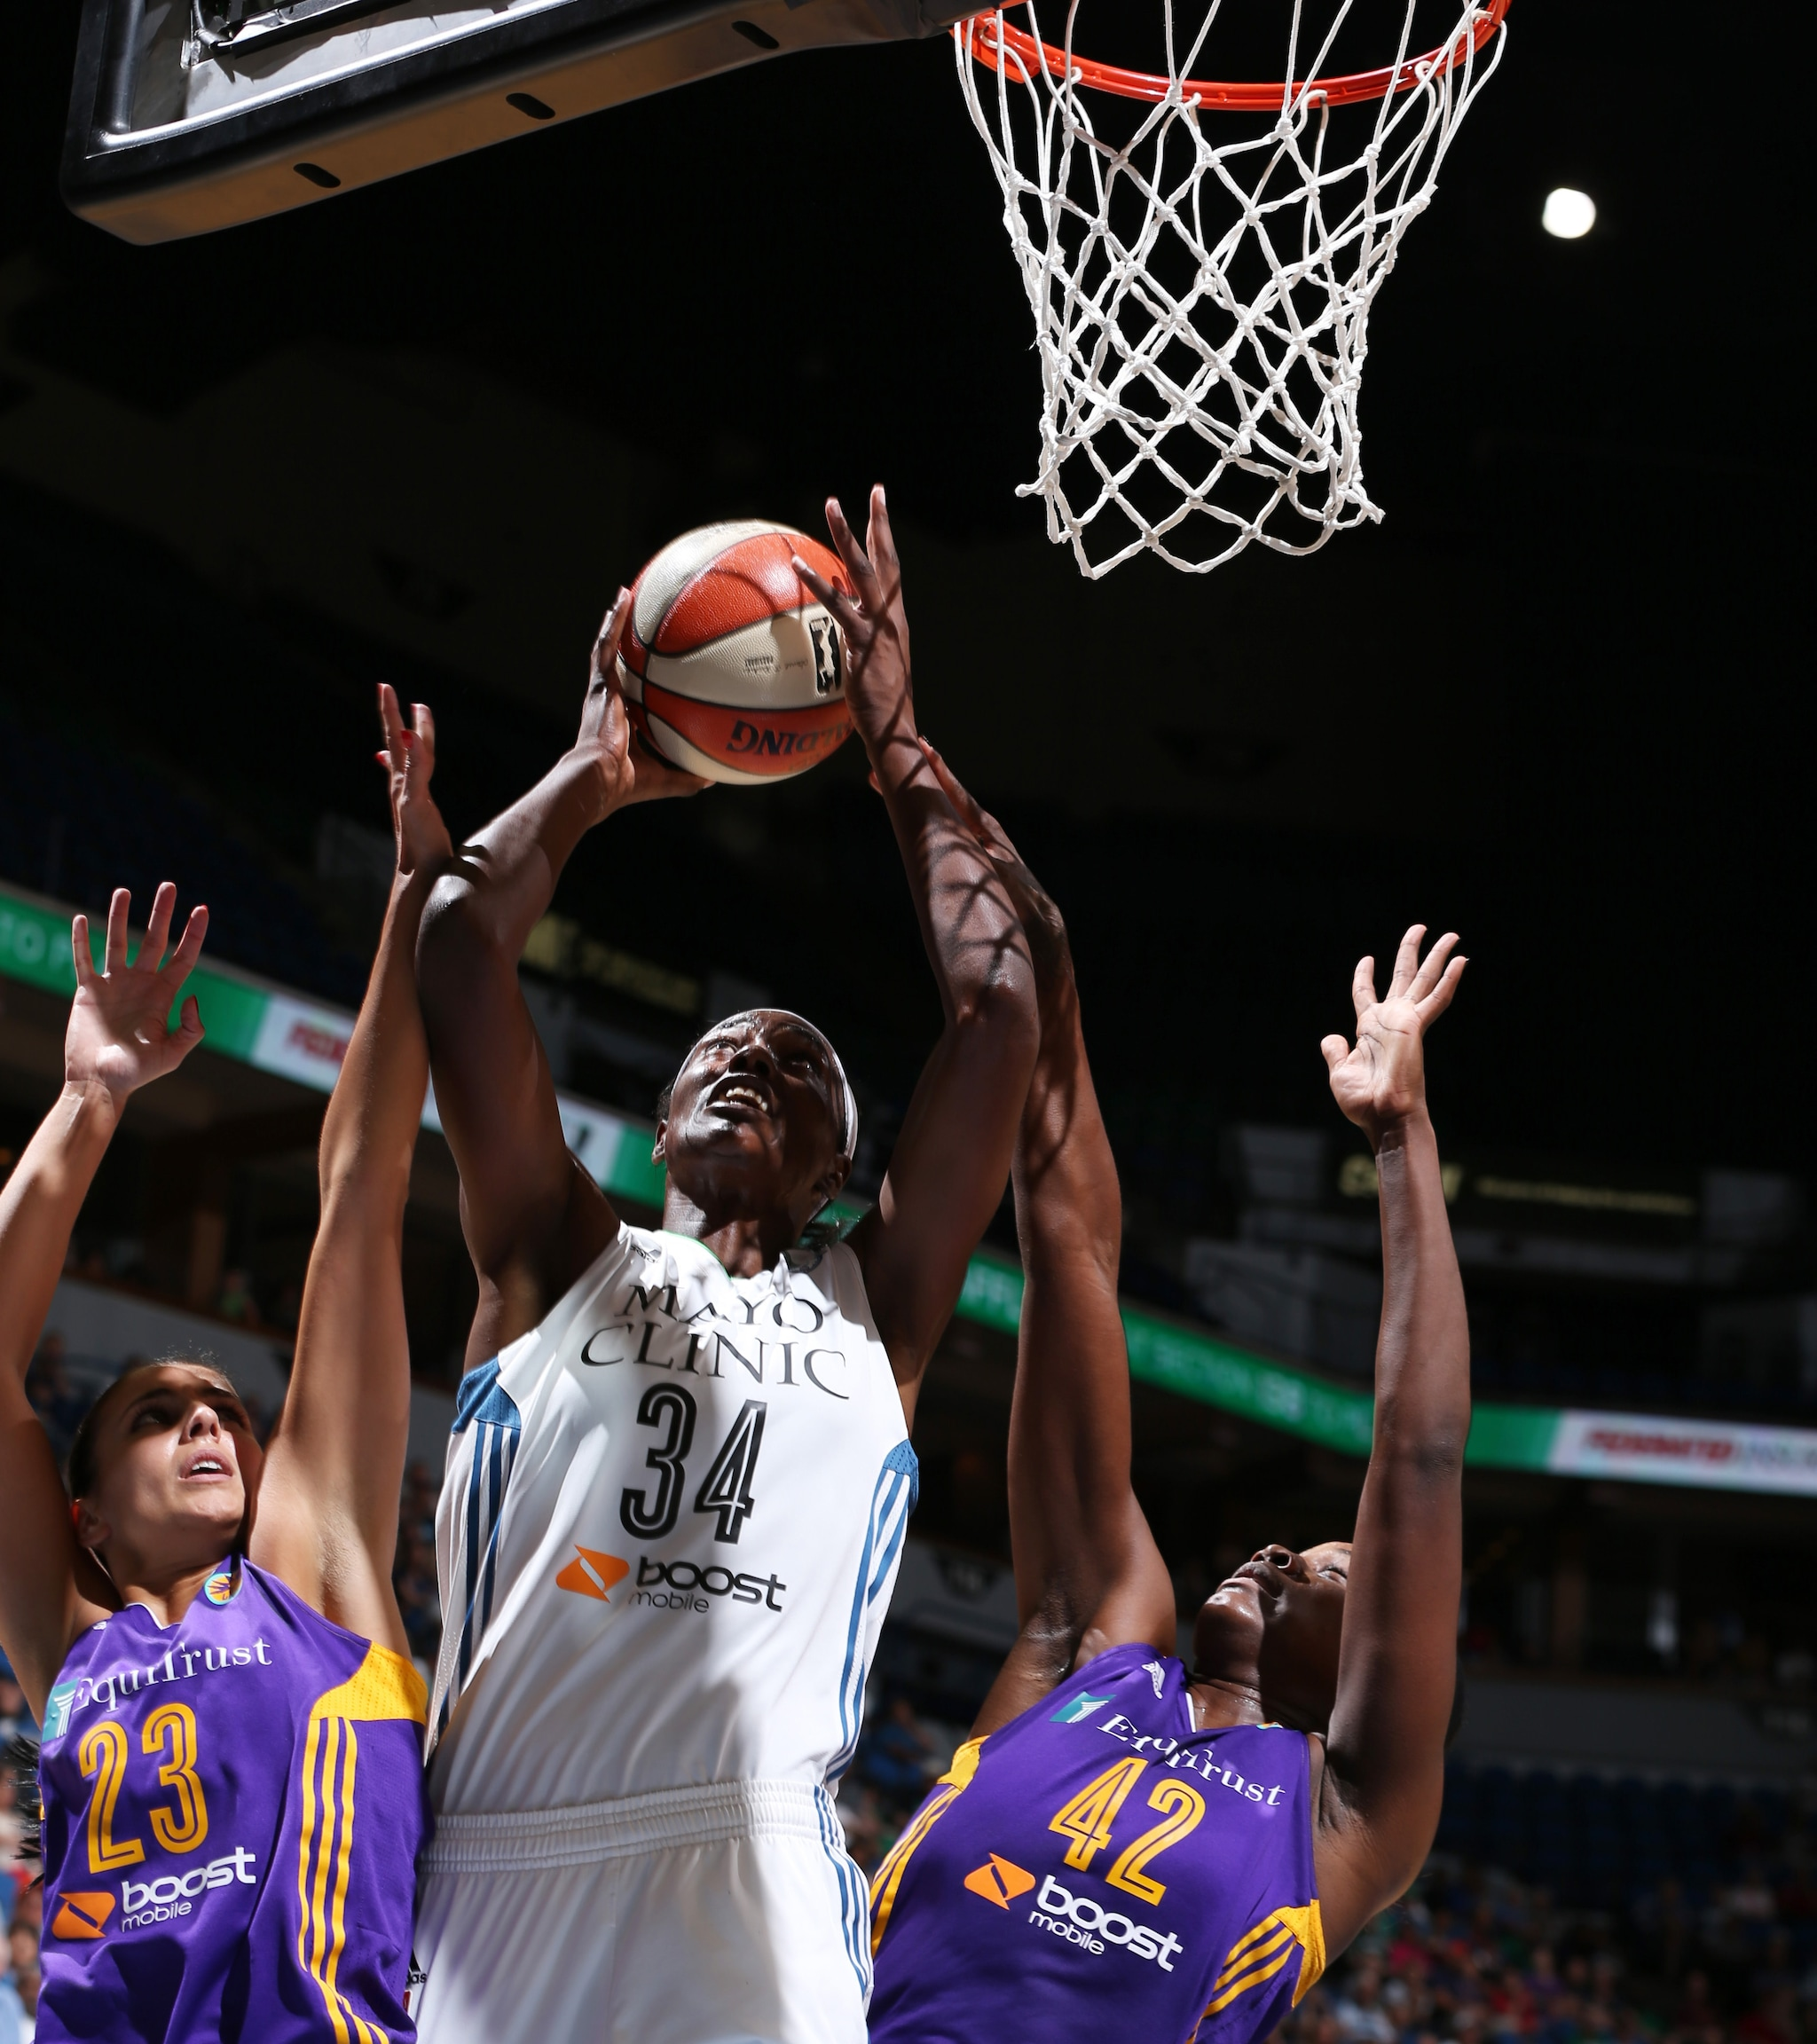 Center Sylvia Fowles, making her first Lynx appearance after a trade with Chicago brought her to Minnesota, had a solid debut, finishing with 11 points, five rebounds and three steals in 26 minutes of play.